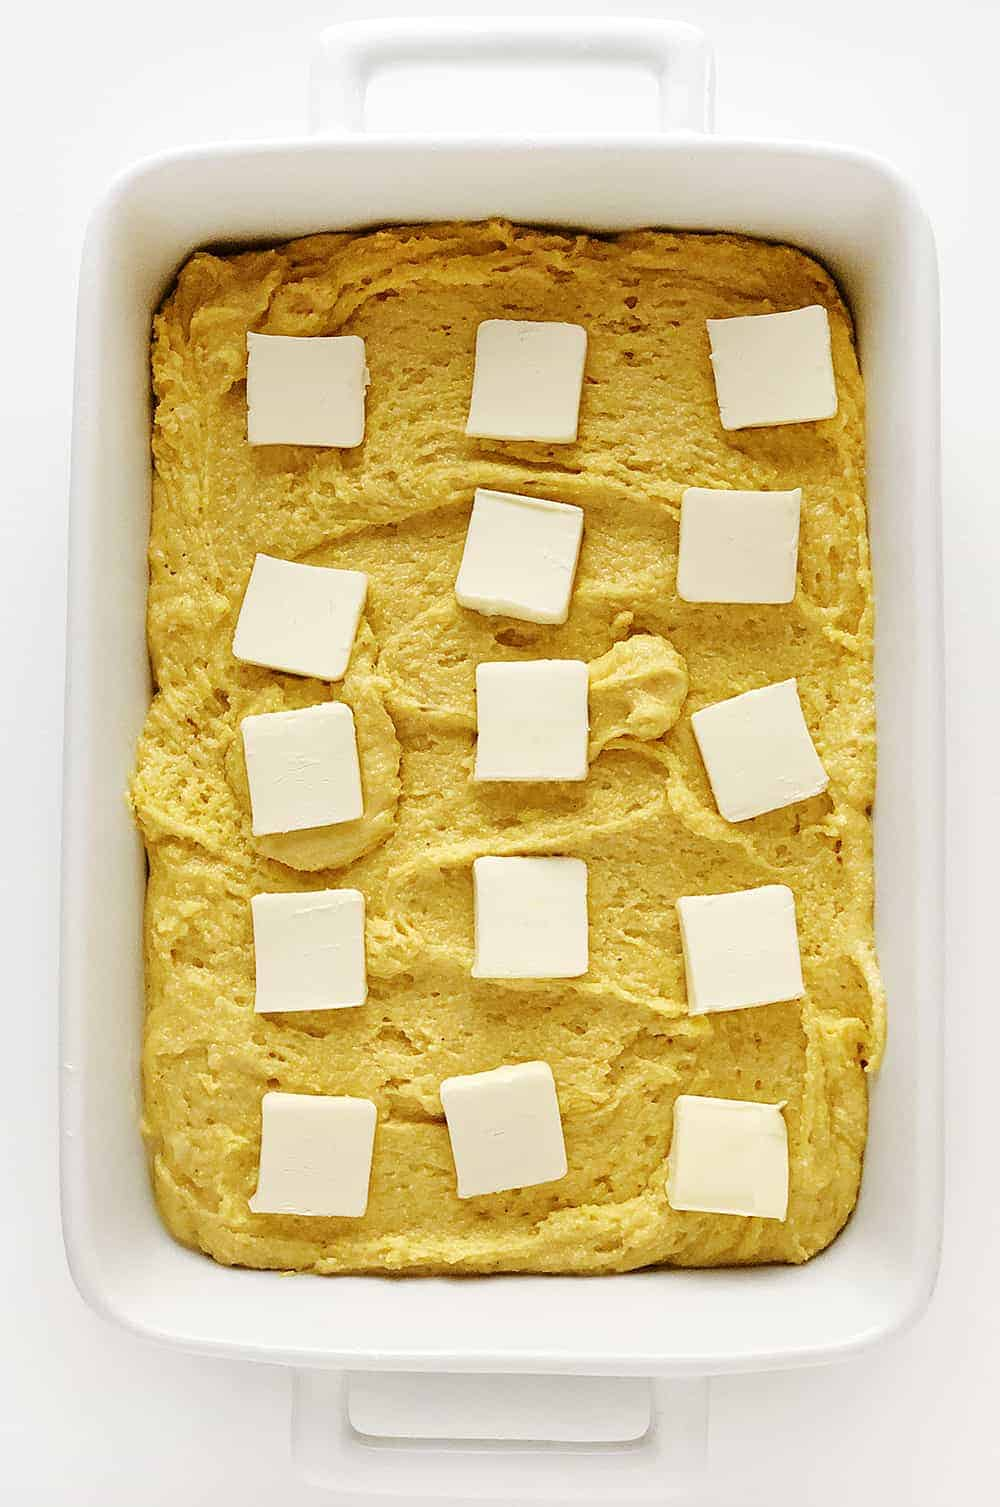 Pan of Sweet Cornbread Unbaked with Butter Pats on Top